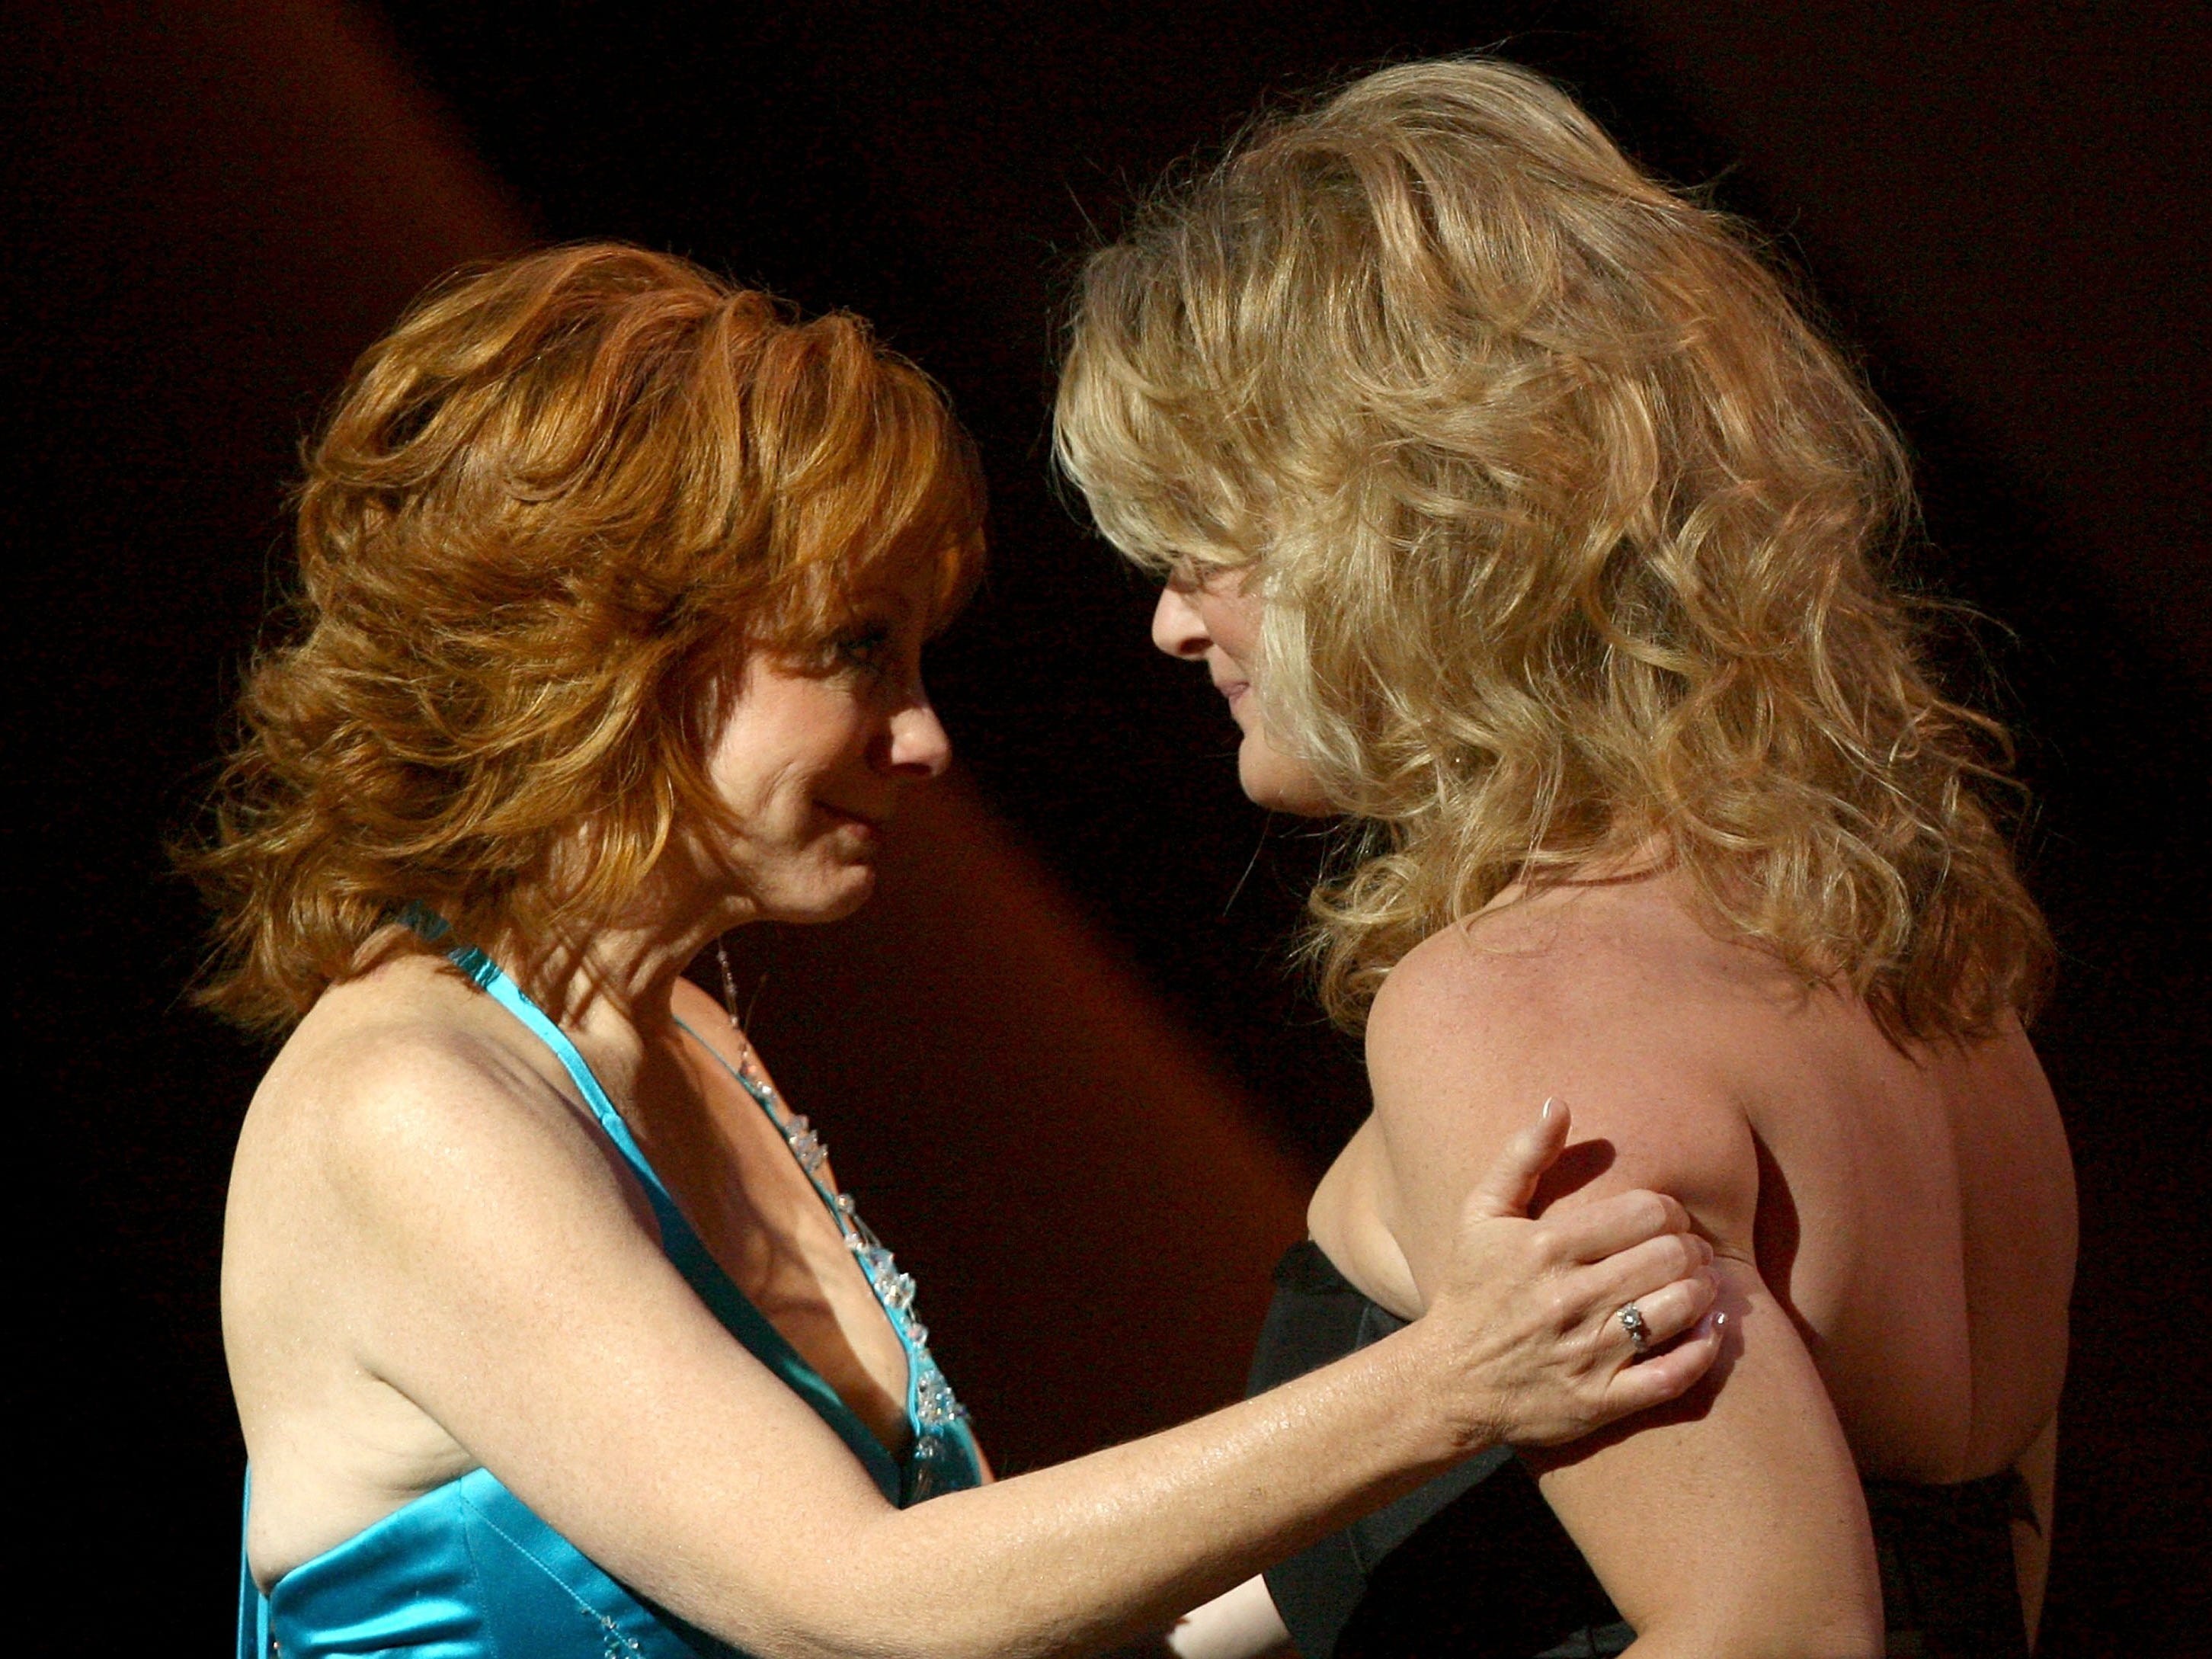 Reba McEntire (left) and Trisha Yearwood at the Country Music Television's CMT Giants honoring Reba McEntire at the Kodak Theatre on October 26, 2006 in Hollywood, California.